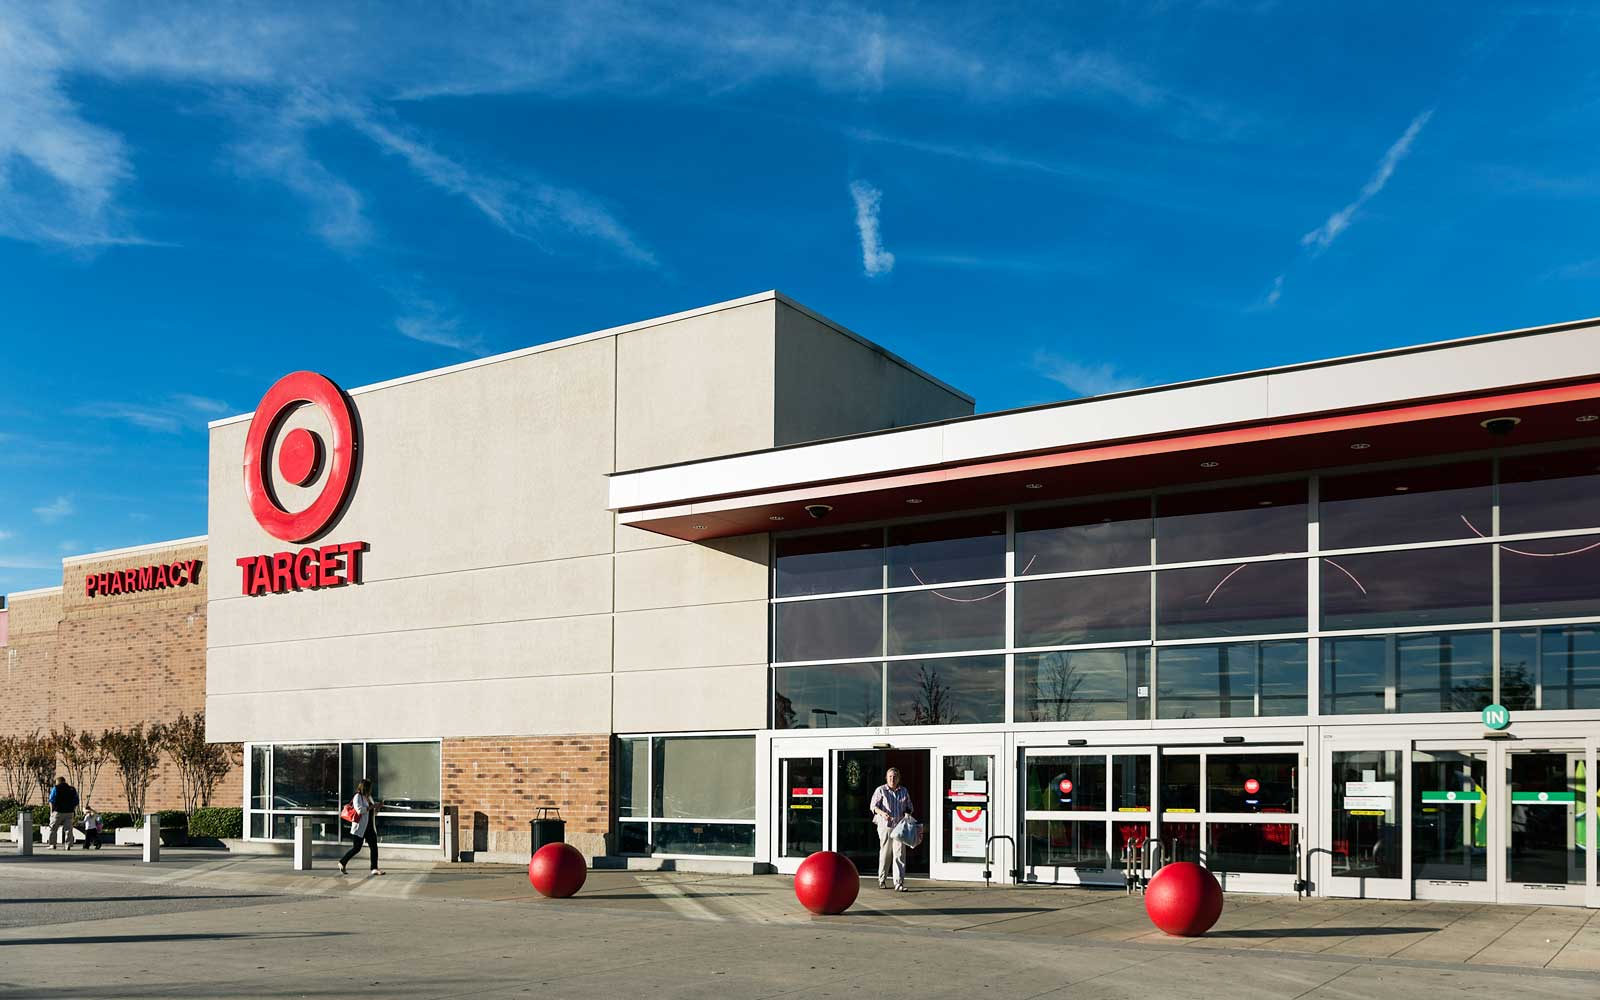 This Is the Best Day to Shop at Target, According to Two Superfans